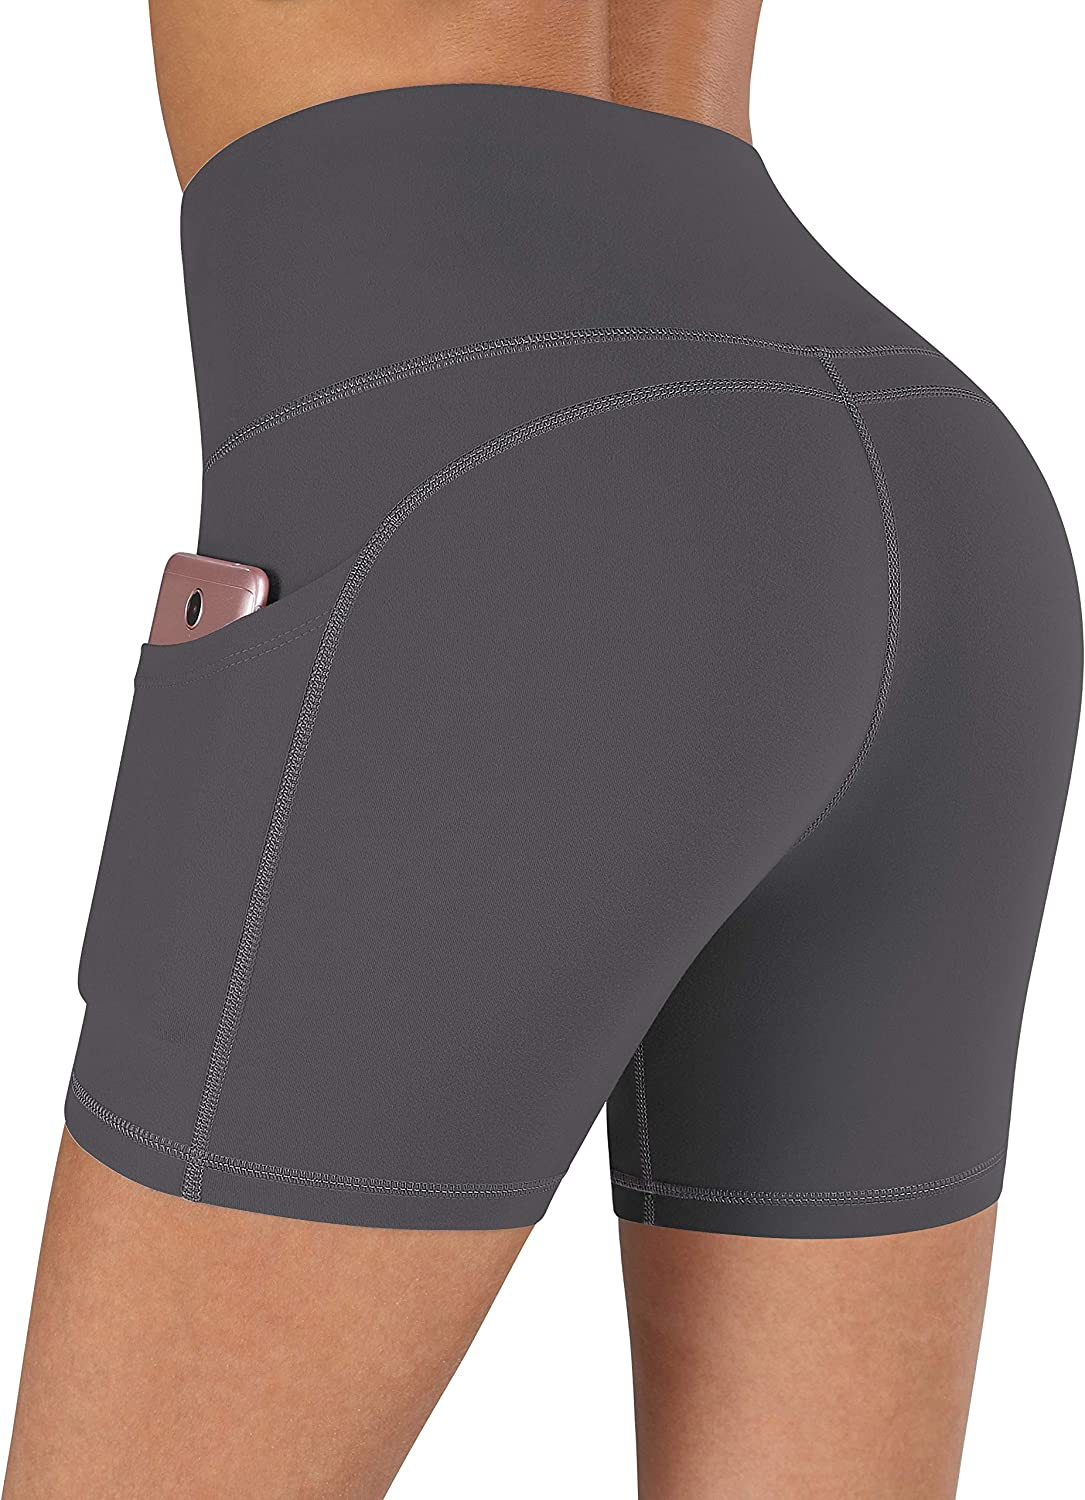 CUGOAO High Waist Biker Shorts for Women, Workout Yoga Shorts with Side Pockets Non See-Through Compression Shorts